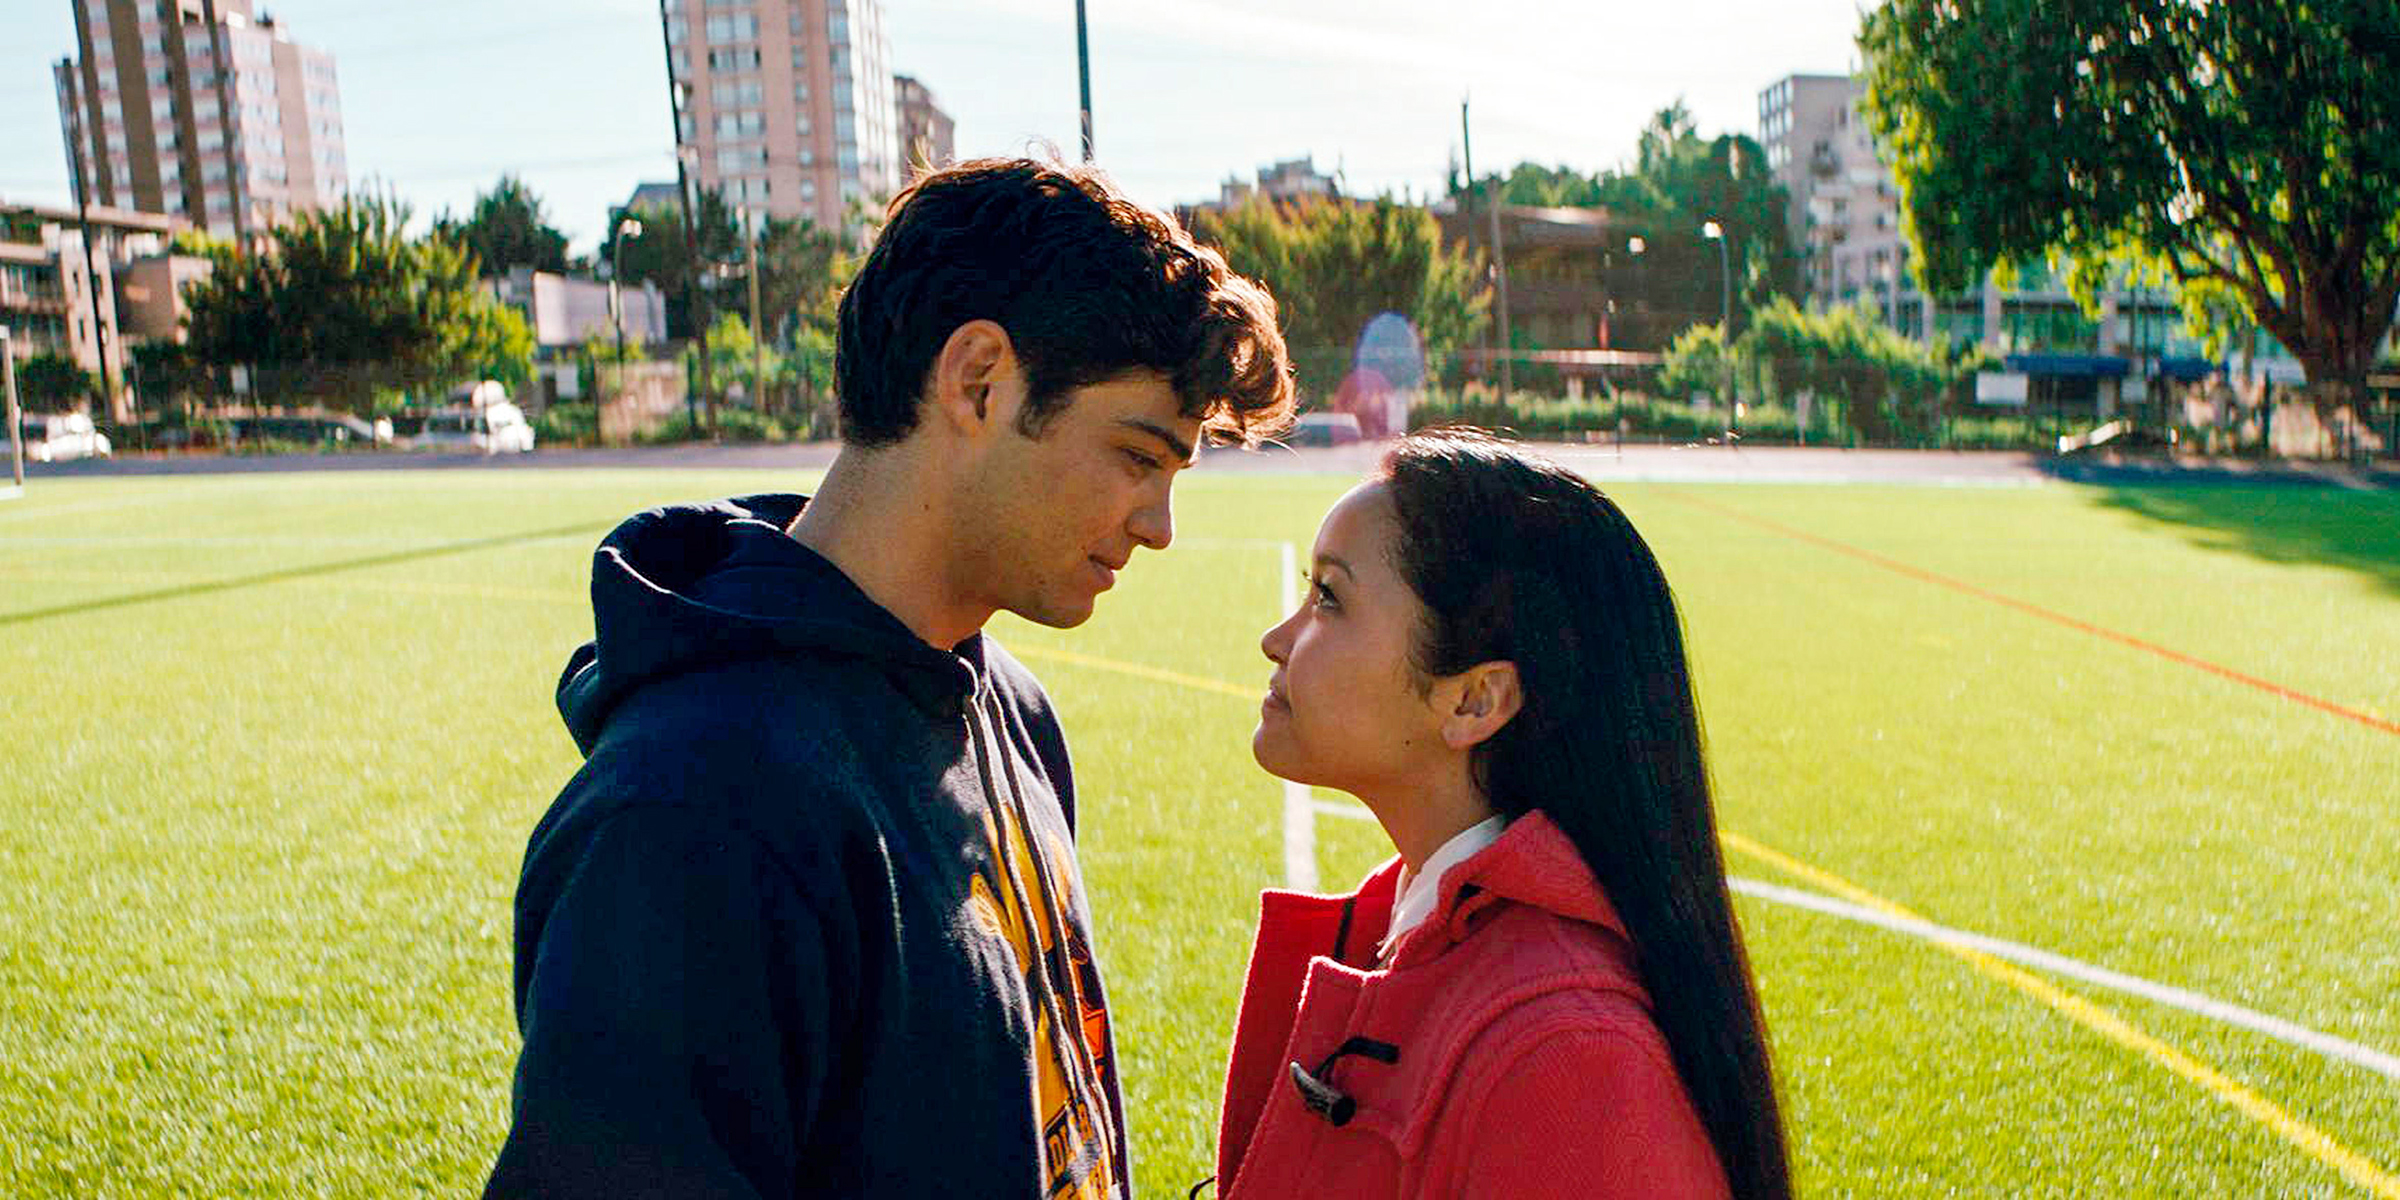 Lana Condor talks new love interest in 'To All The Boys I've Loved Before 2'